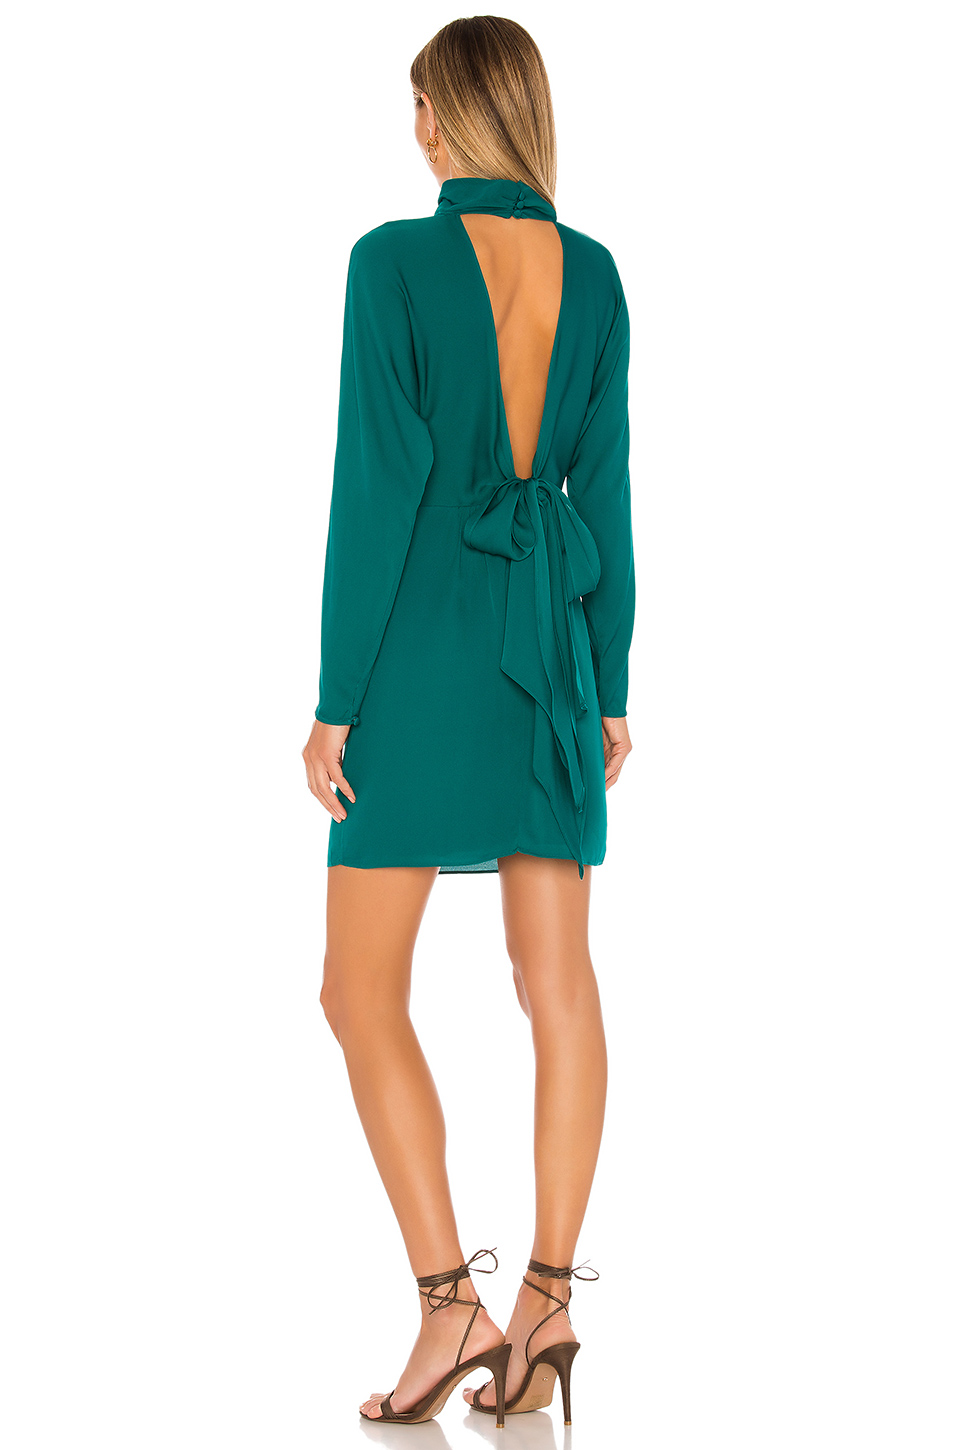 MILLY Celeste Backless Tie Dress